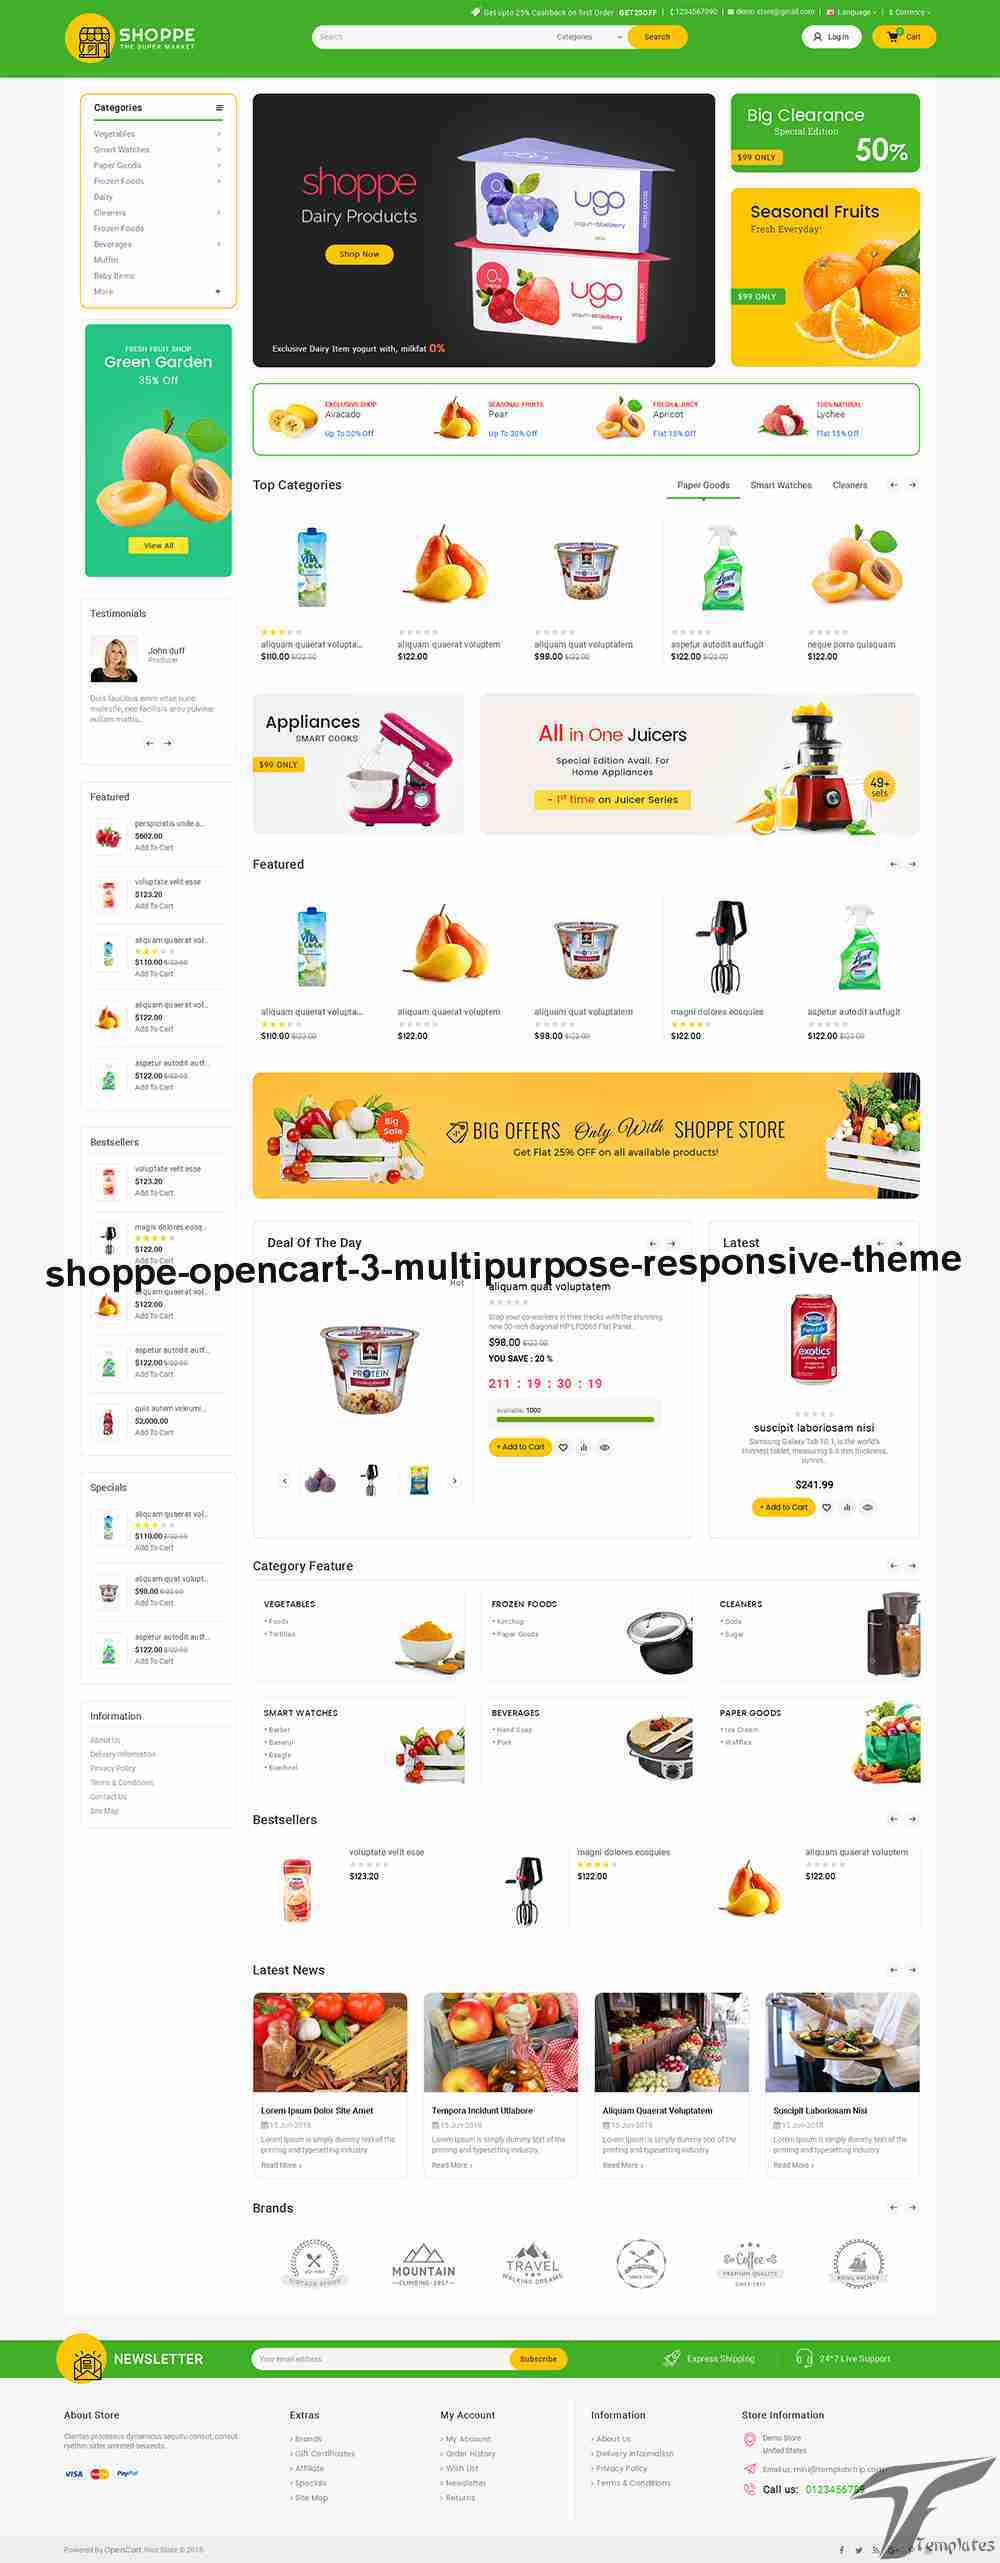 https://images.besthemes.com/images/h1_shoppe-opencart-3-multipurpose-responsive-theme4-_-249595821/03.OPC090_03.jpg